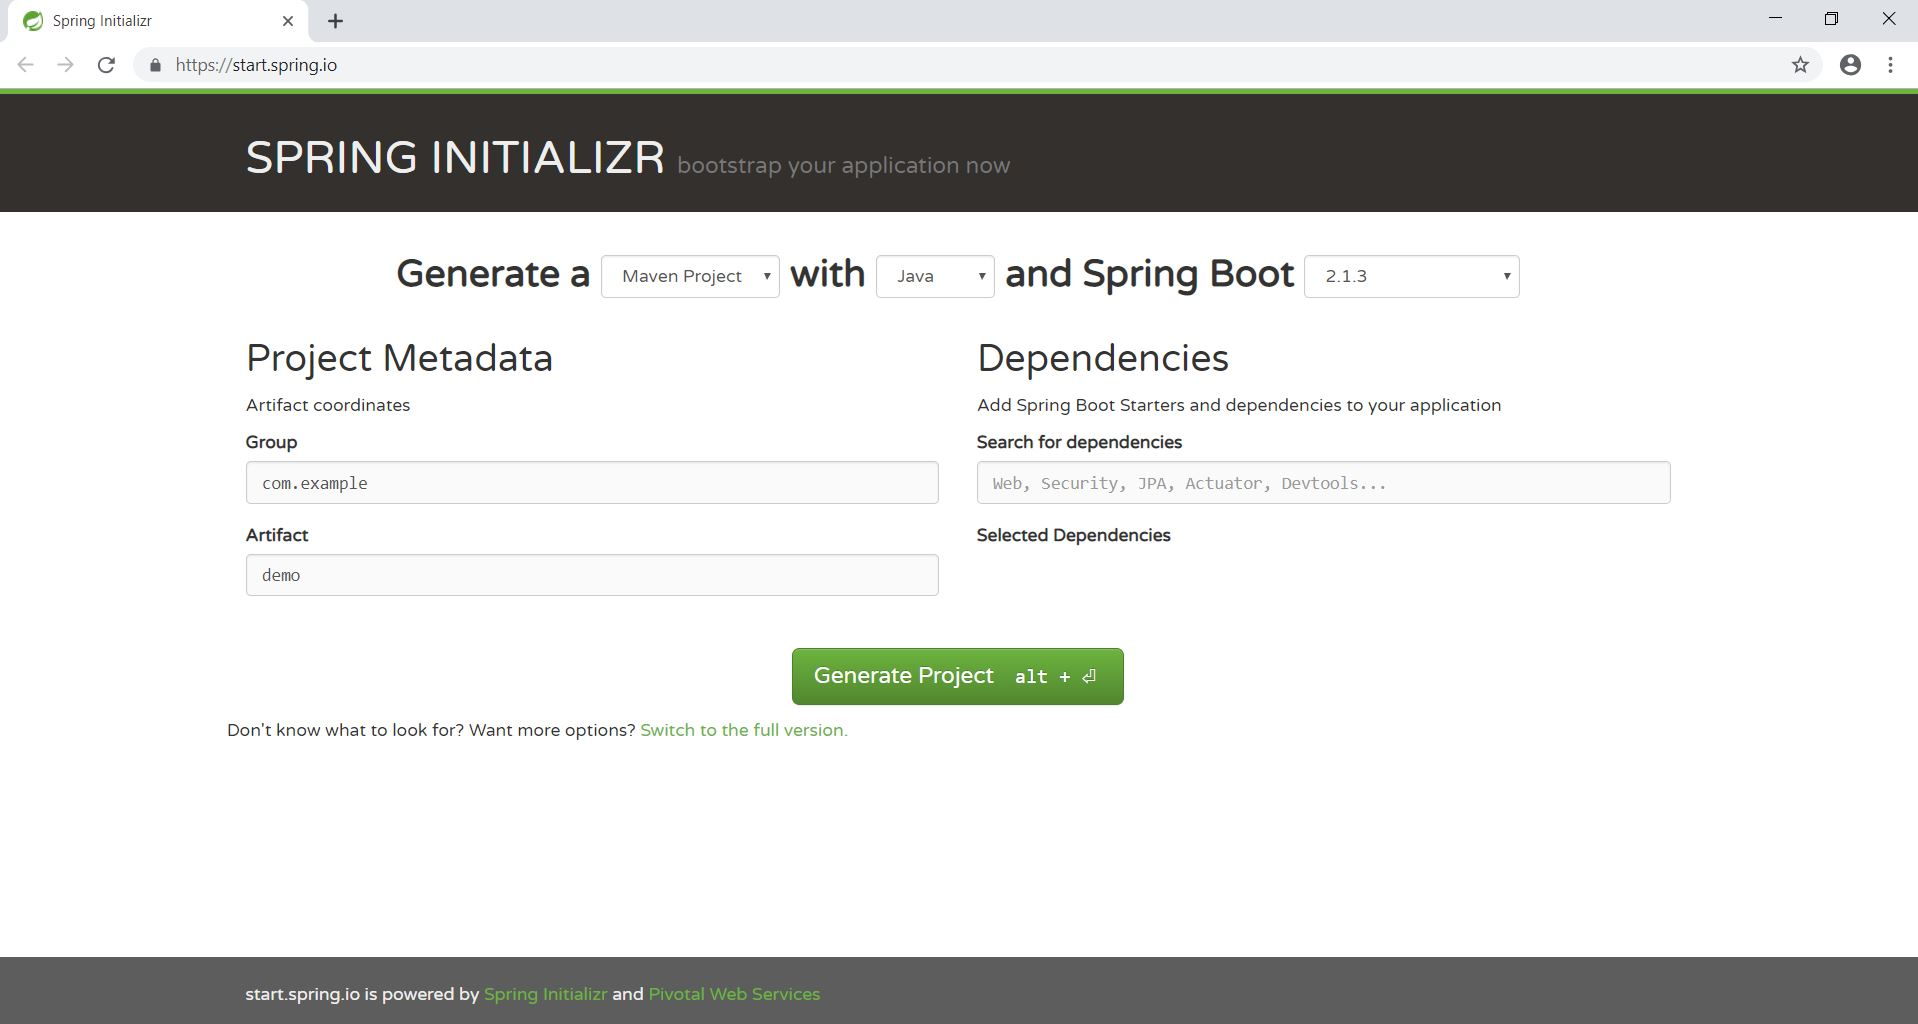 web based application using bootstrap and mysql database